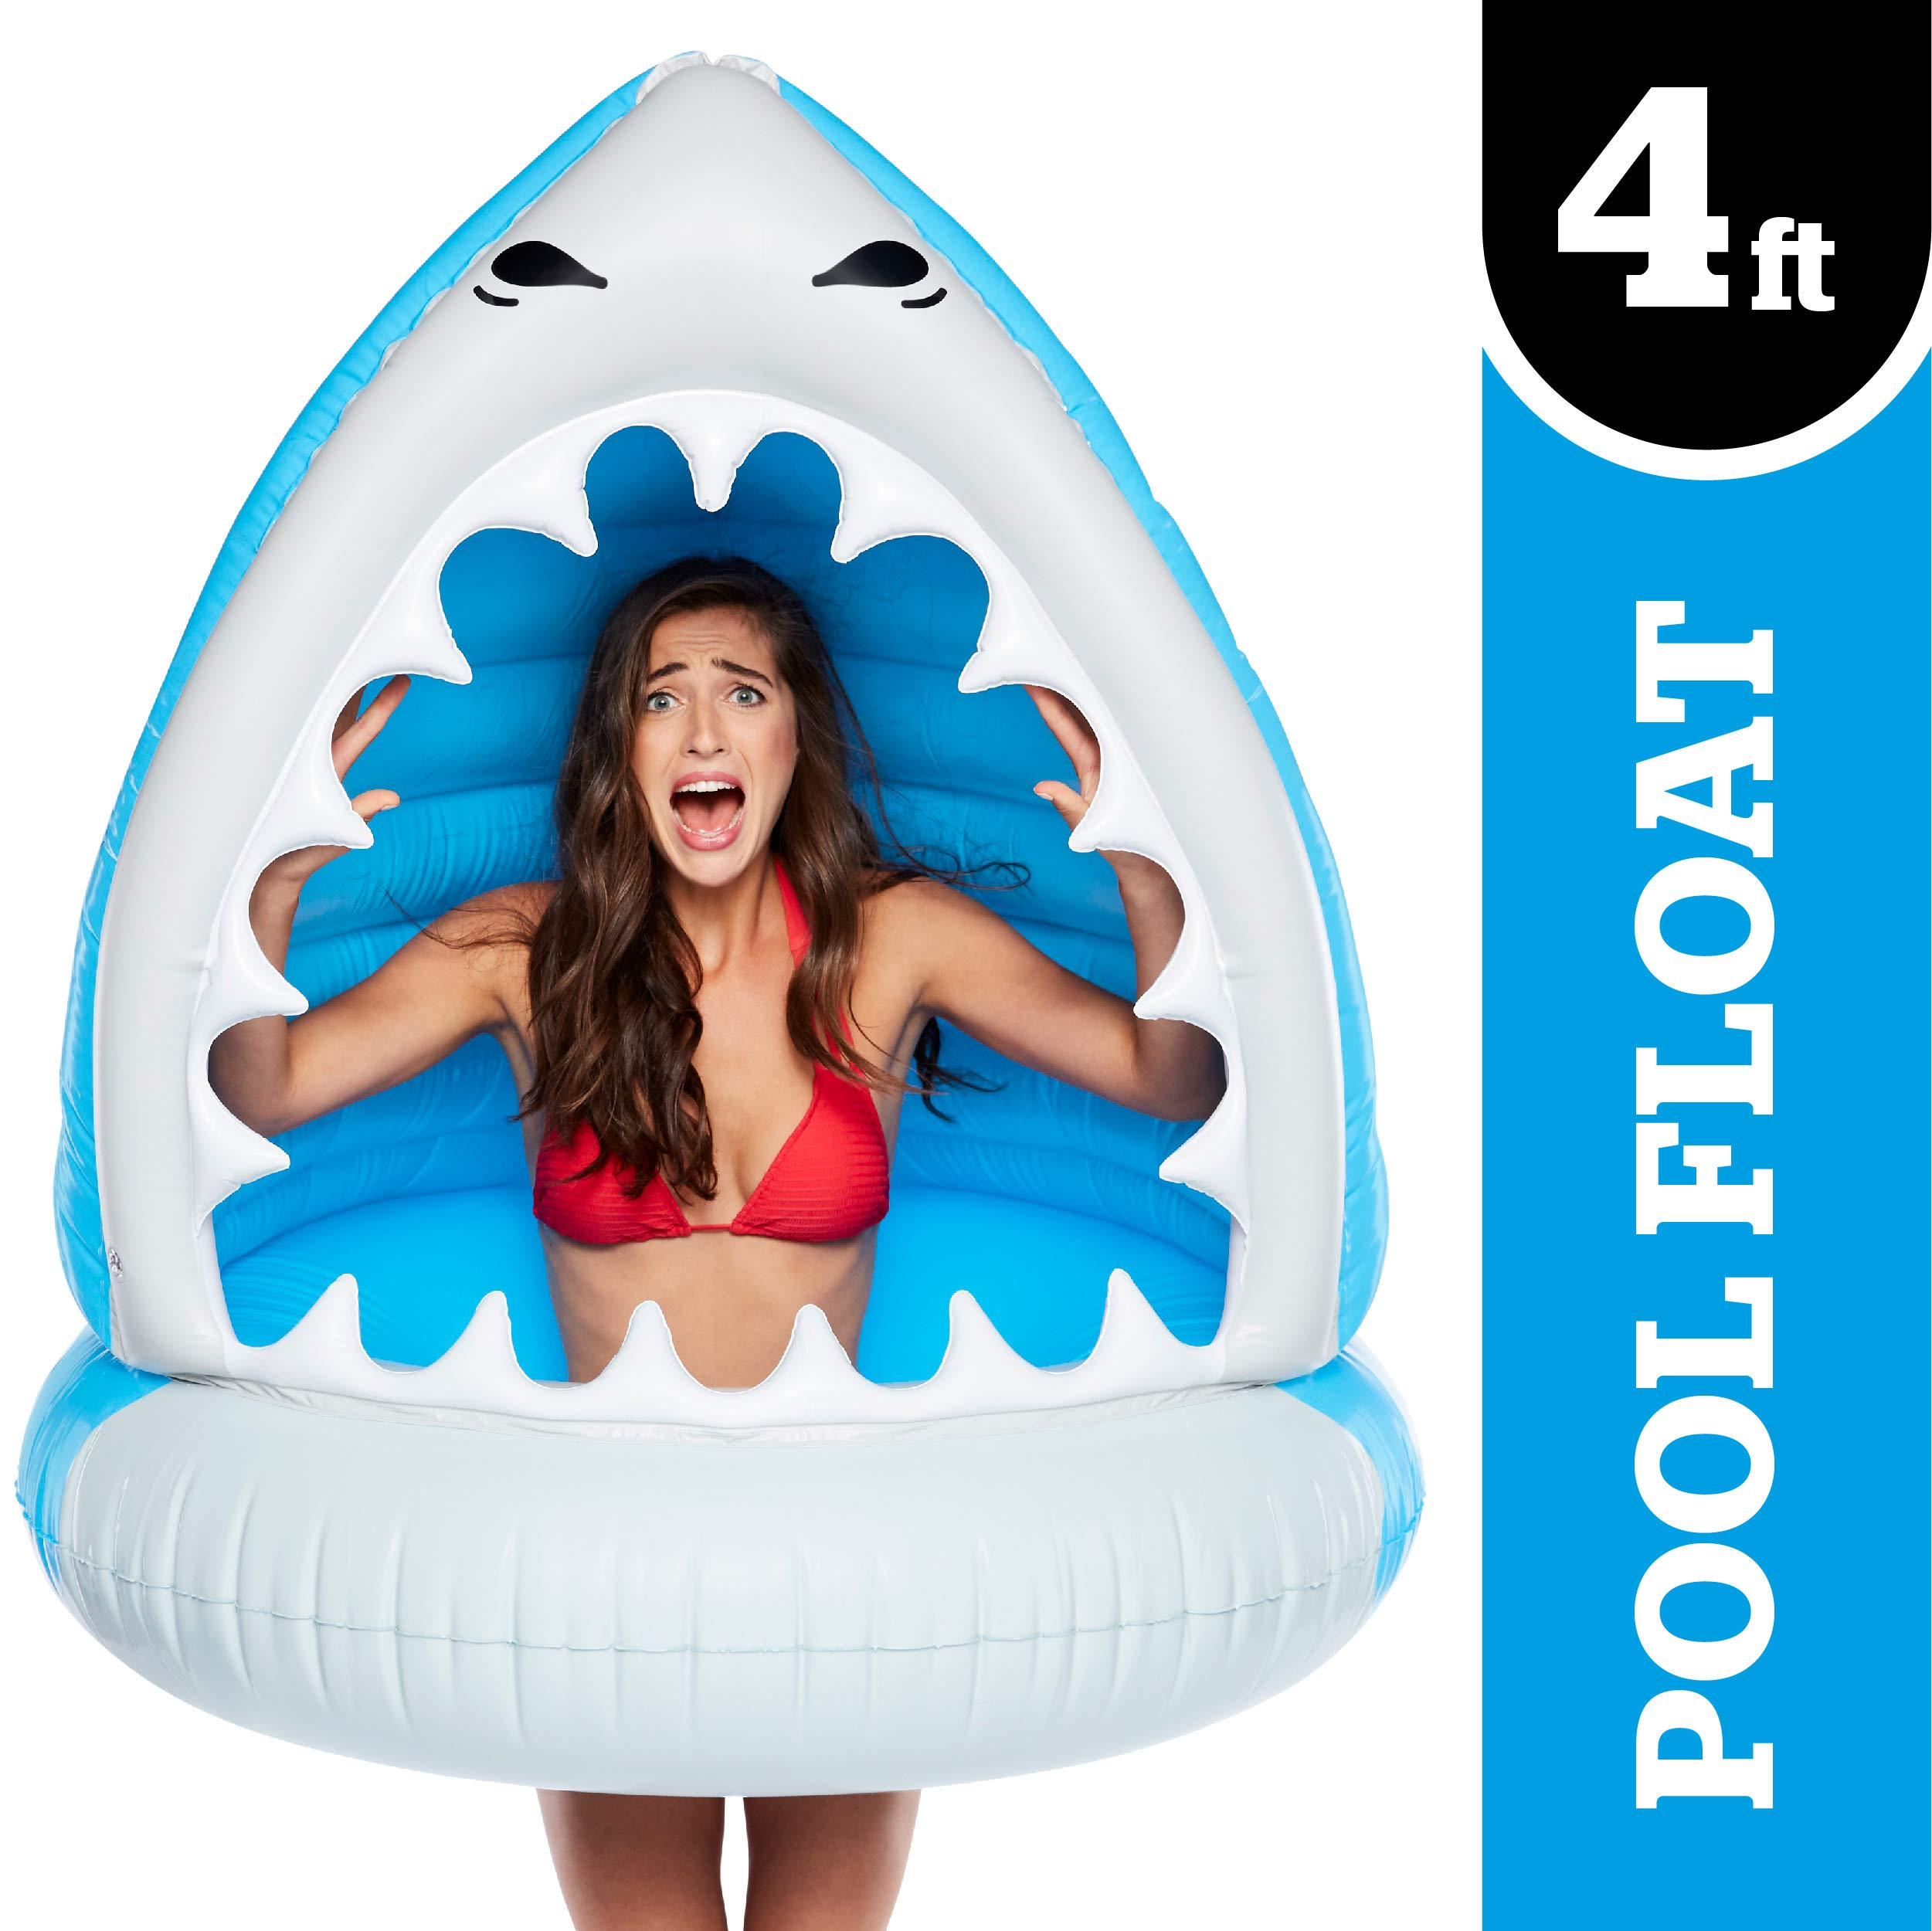 BigMouth Inc. Giant Man-Eating SharkPool Float -Gigantic 4 Foot Pool Float, Funny Inflatable Vinyl Summer Pool or Beach Toy, Patch Kit Included by BigMouth Inc